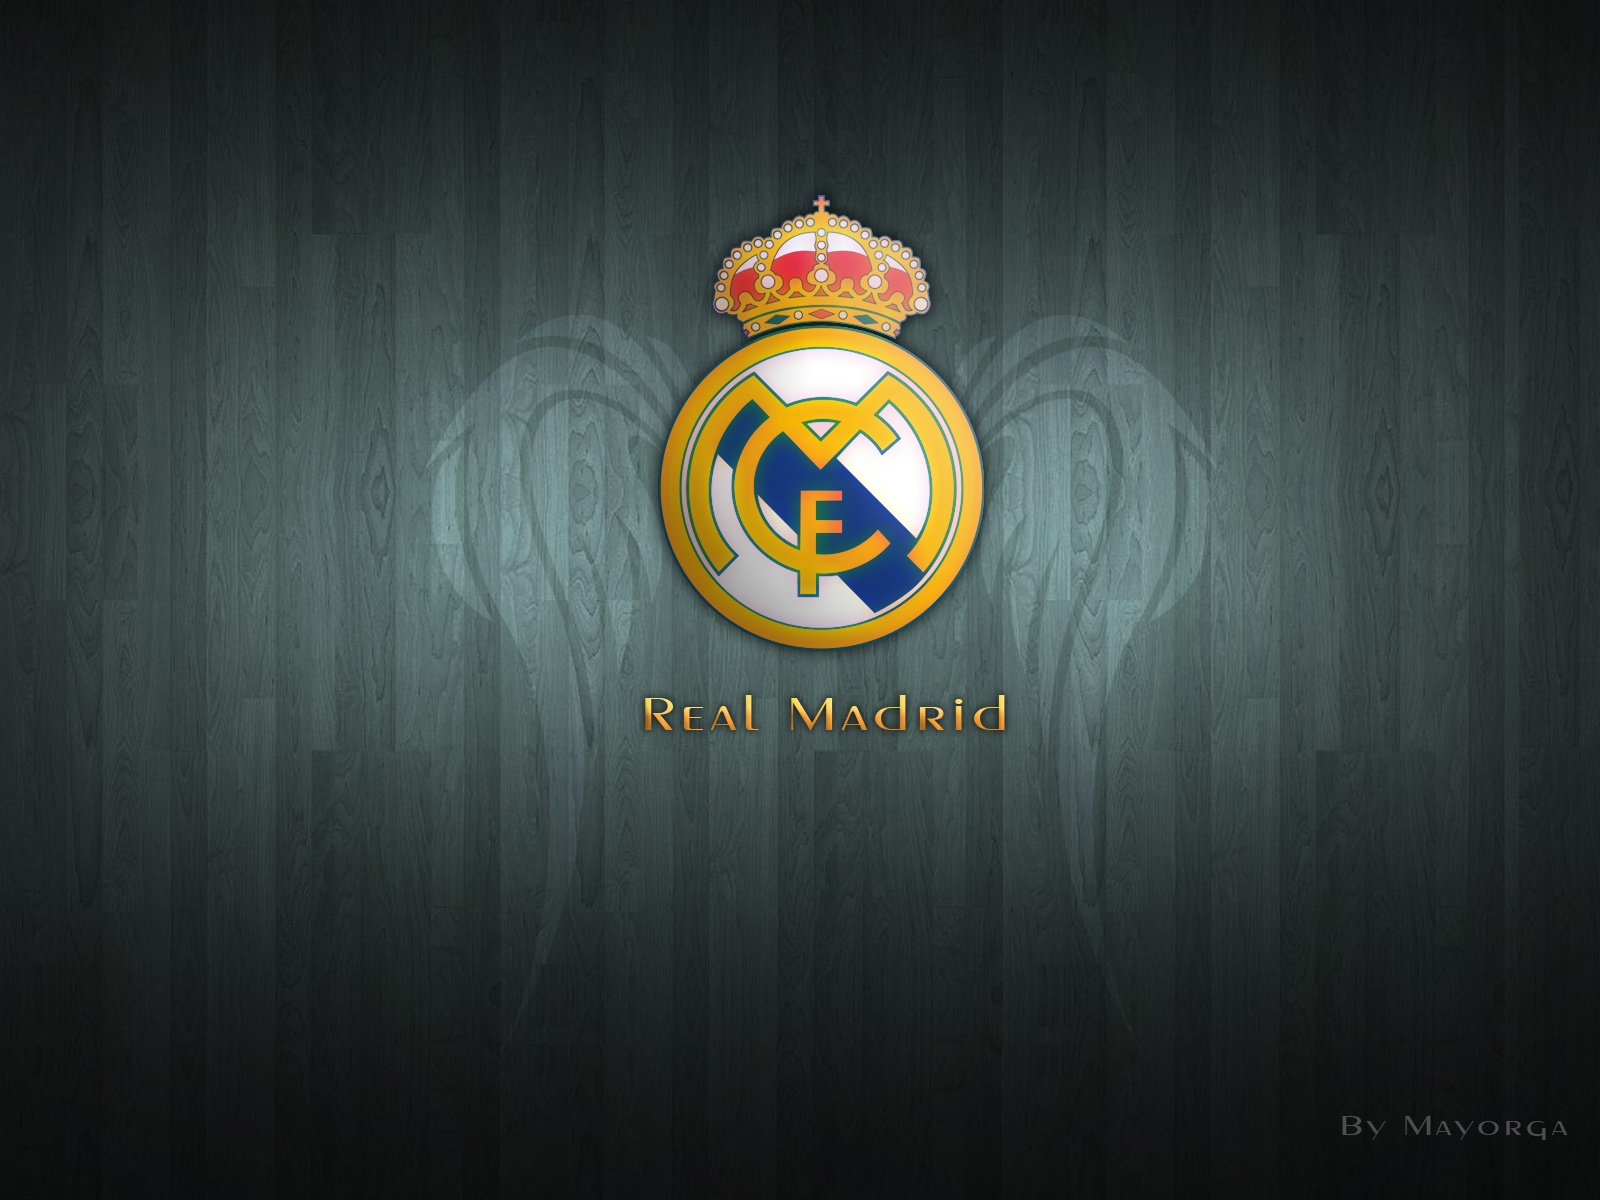 http://4.bp.blogspot.com/-CZ17L957nSc/UNkH1cbwnxI/AAAAAAABAso/gUW4yKkXj2U/s1600/wallpaper-do-+real+madrid+-wallpaper+(8).jpg